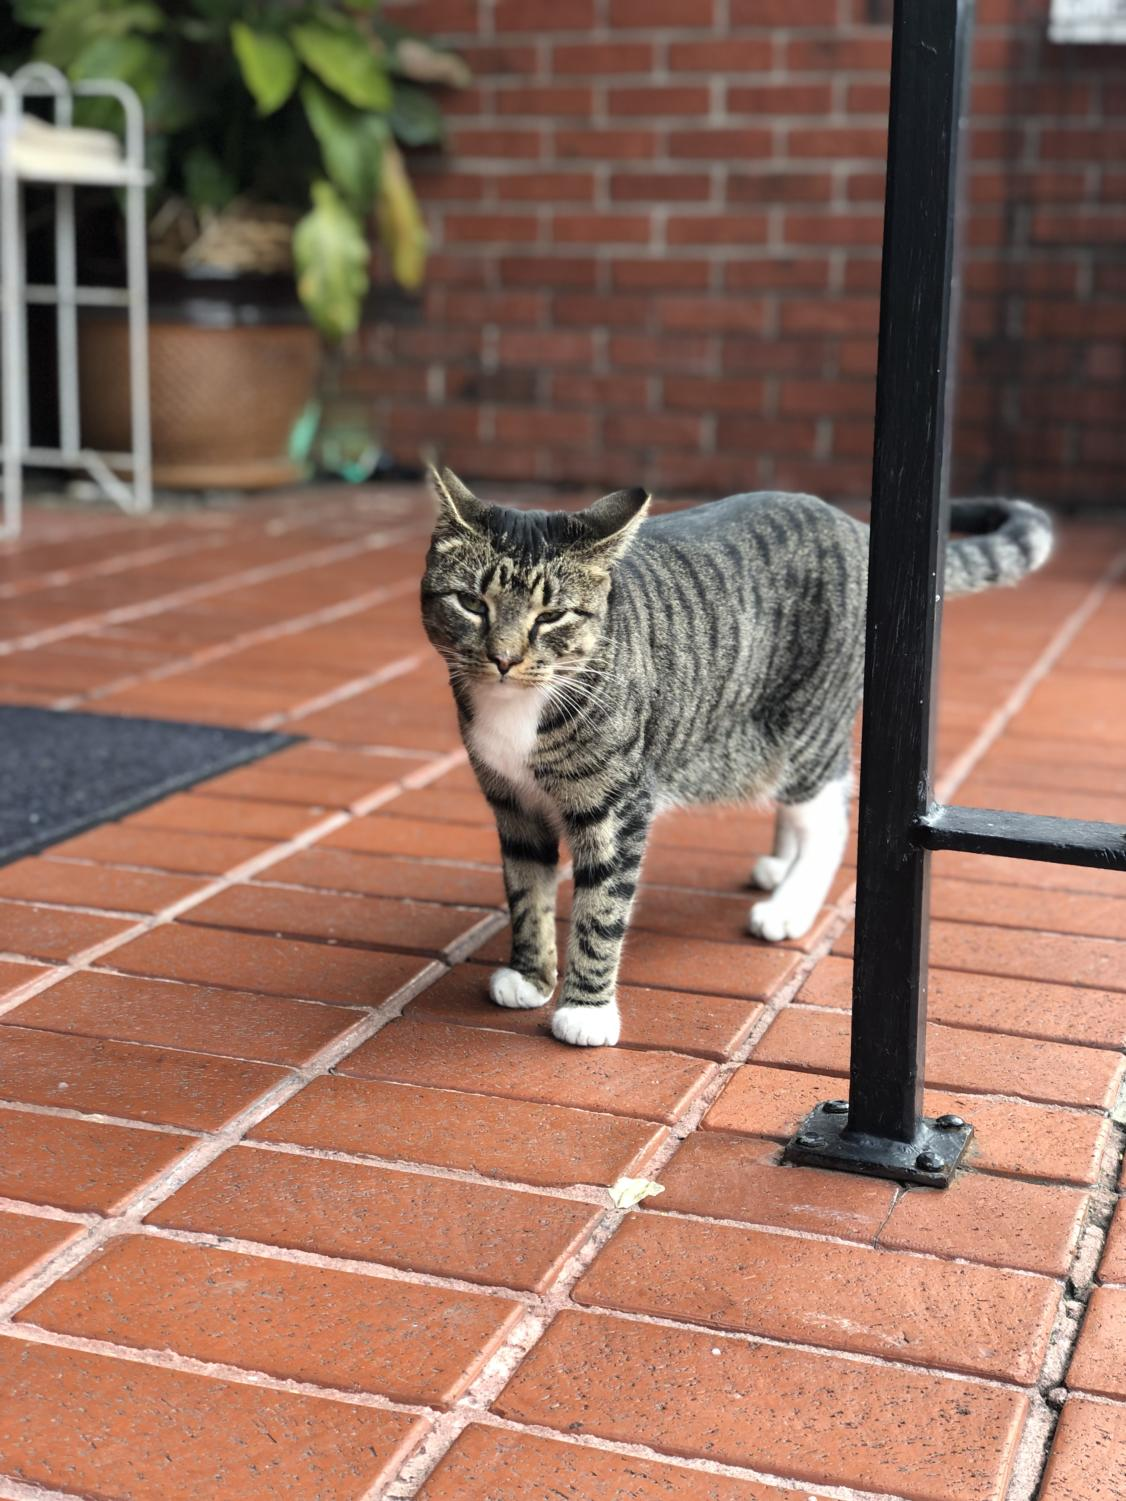 Popcorn, or Poppy, is a one-and-a-half-year-old gray tabby who has become infamous at the Prytania Theatre. When she went missing in late January,  Poppy grabbed the attention of New Orleans Uptown. Photo Courtesy of Paige Brunet.